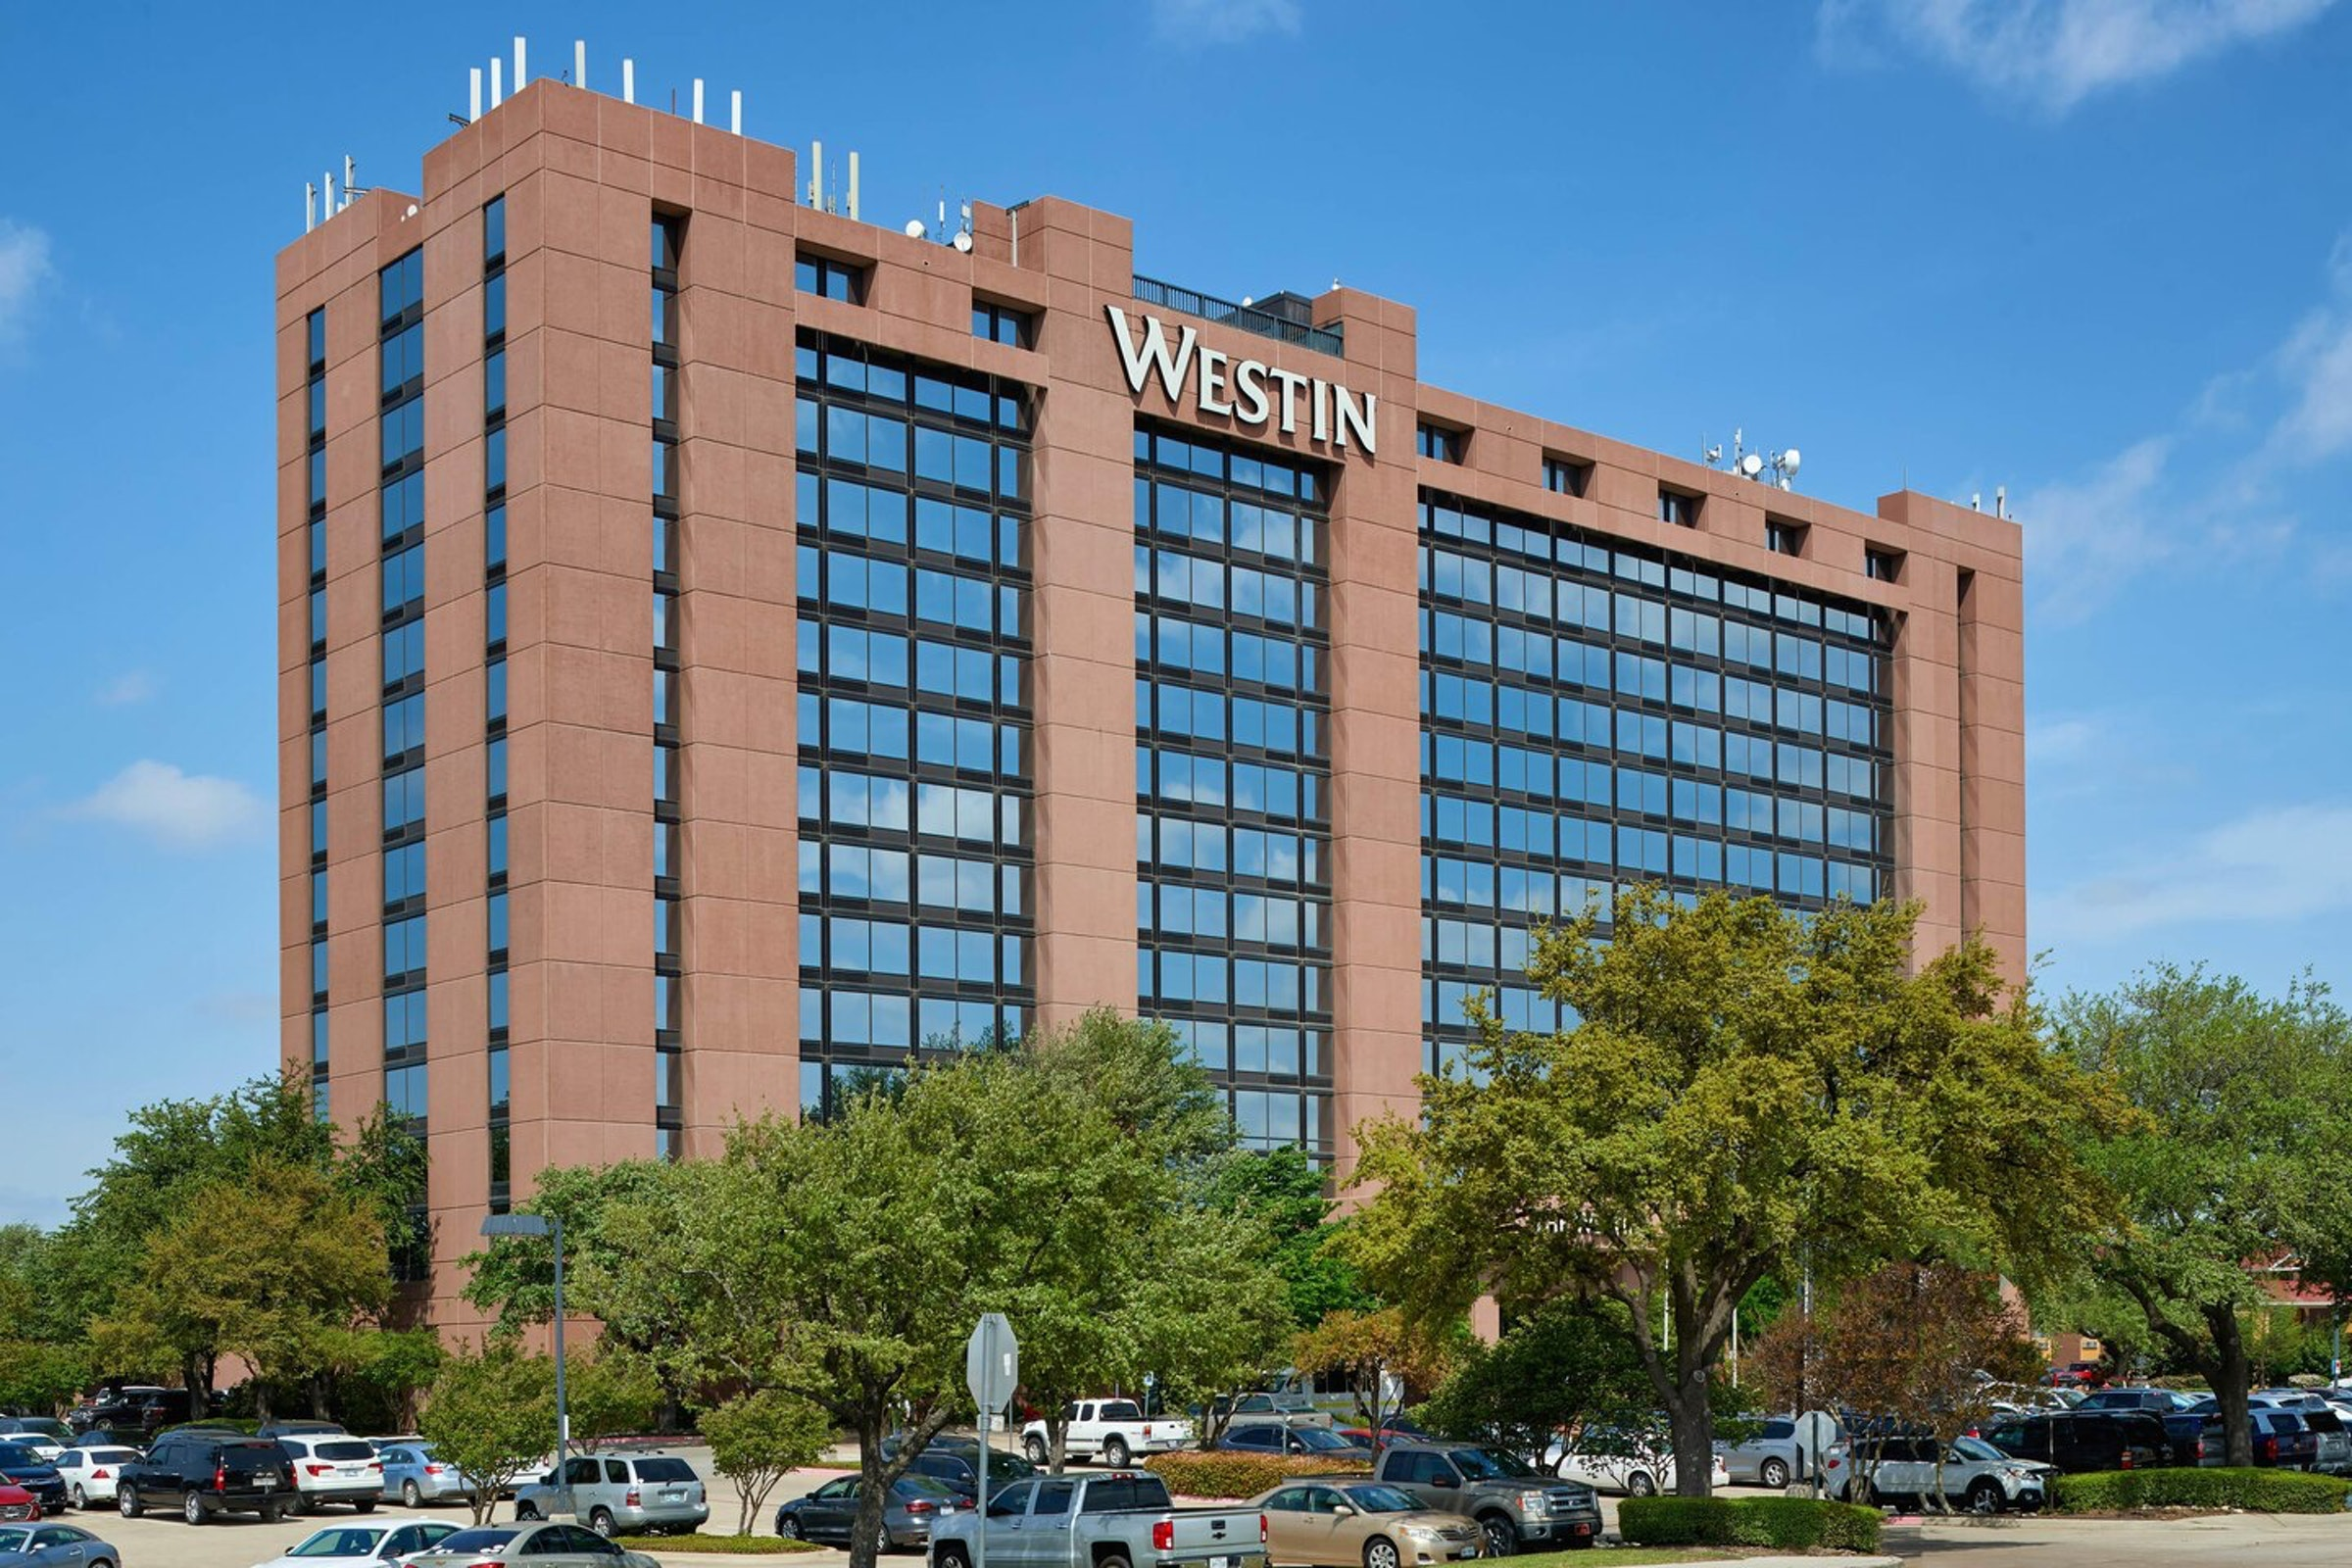 The Westin Dallas Fort Worth Airport in Beyond Dallas